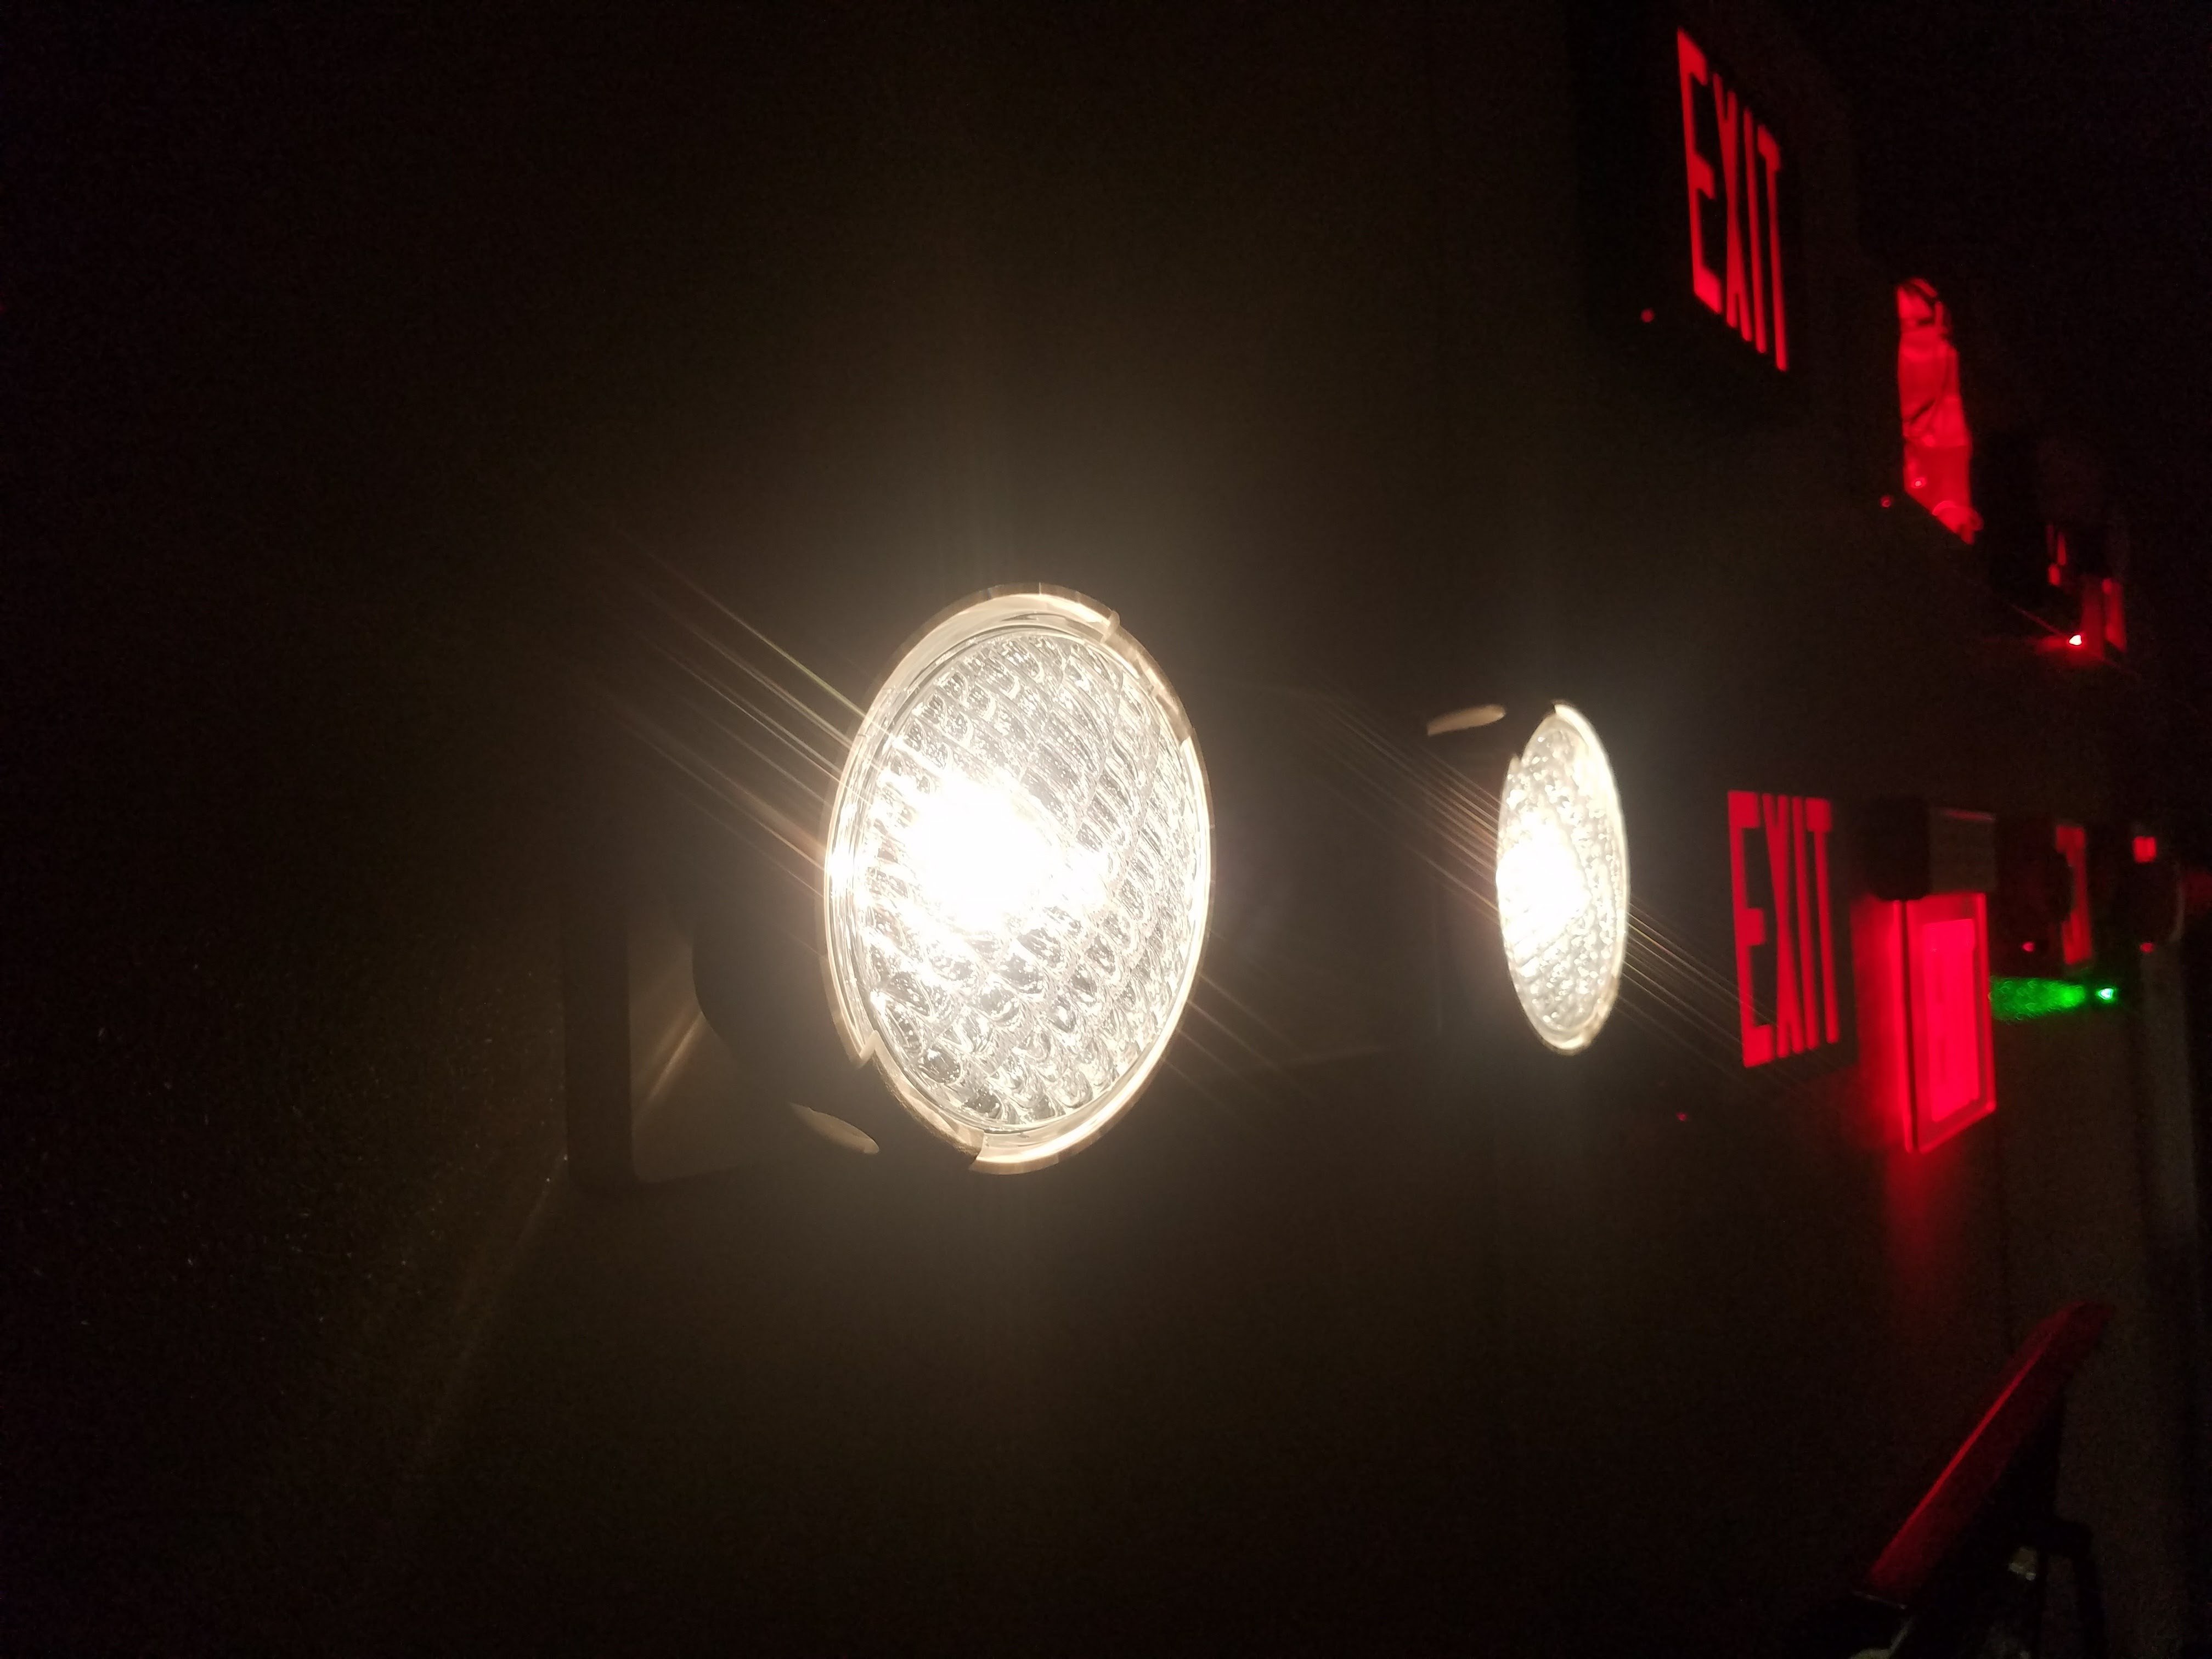 With the recent release of the 2018 Edition of the National Fire Protection Association (NFPA) National Life Safety Code 101, which became effective on September 6, 2017, now is a good time to review your emergency lighting system to ensure that it is still compliant with the newest updates.